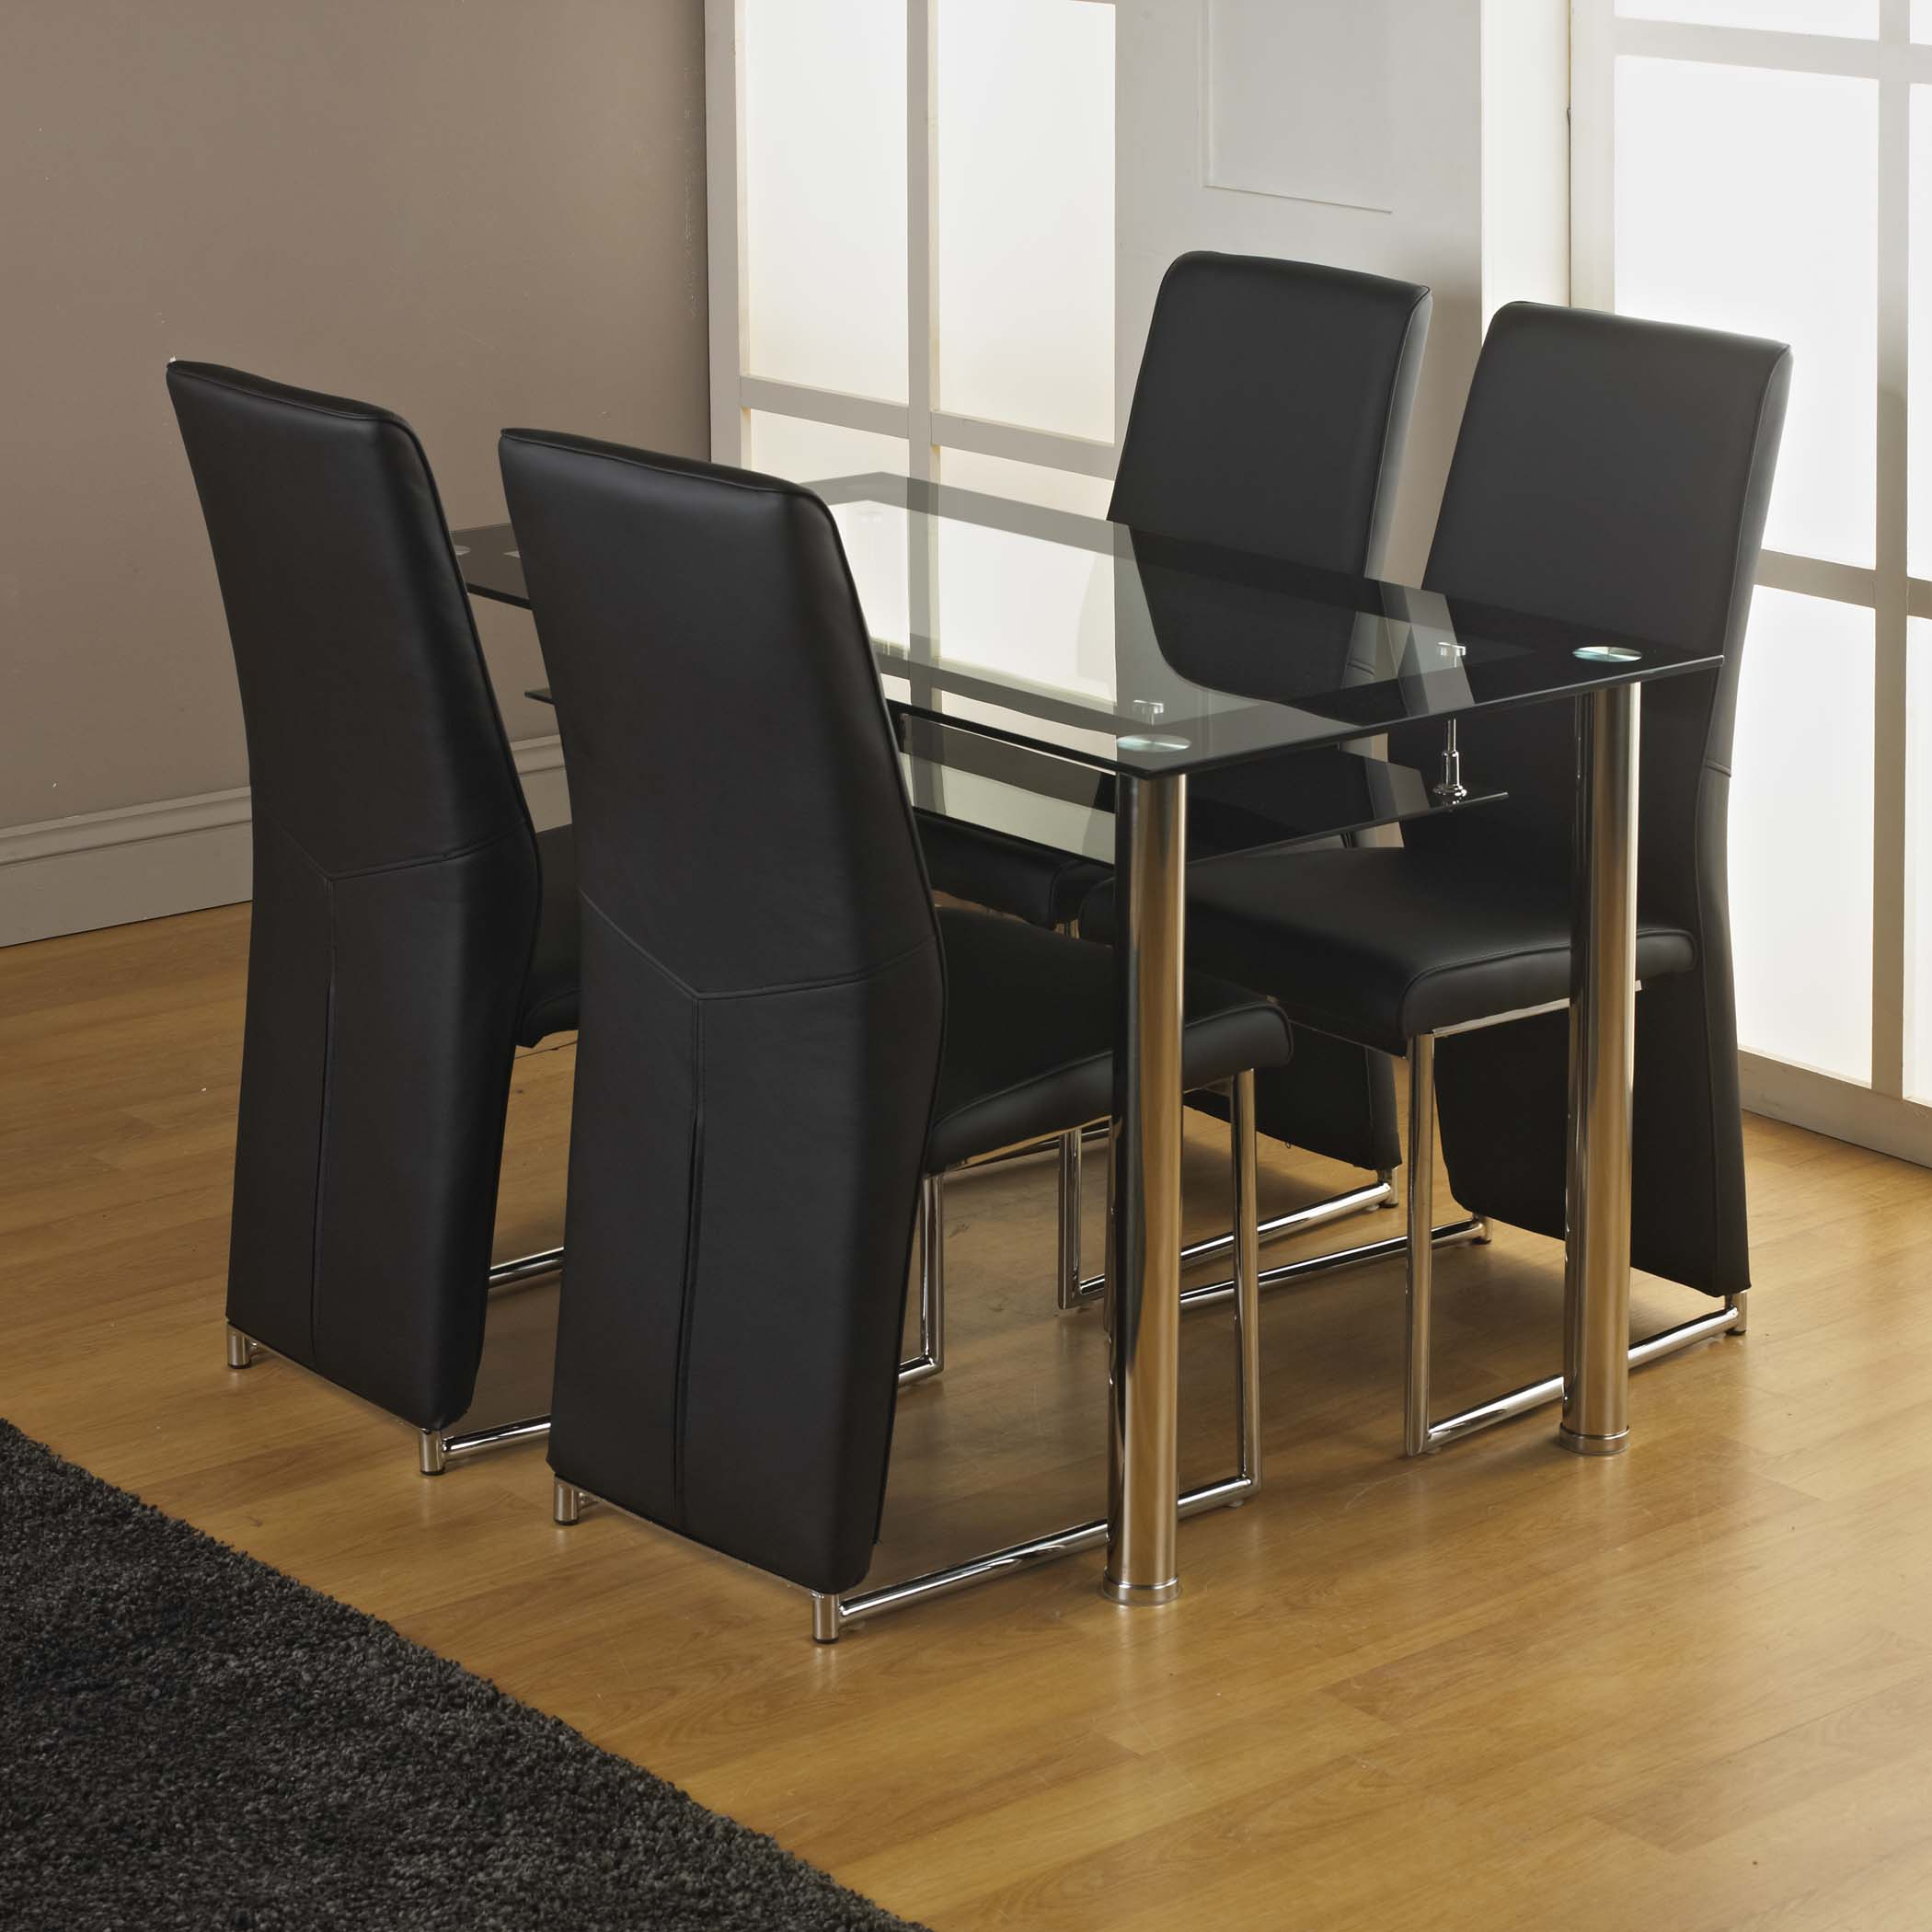 Kingston Black Aston Chair KINGSTON BLACK FRANCO 03 Franco Dining 02 JULIET CHAIR 01